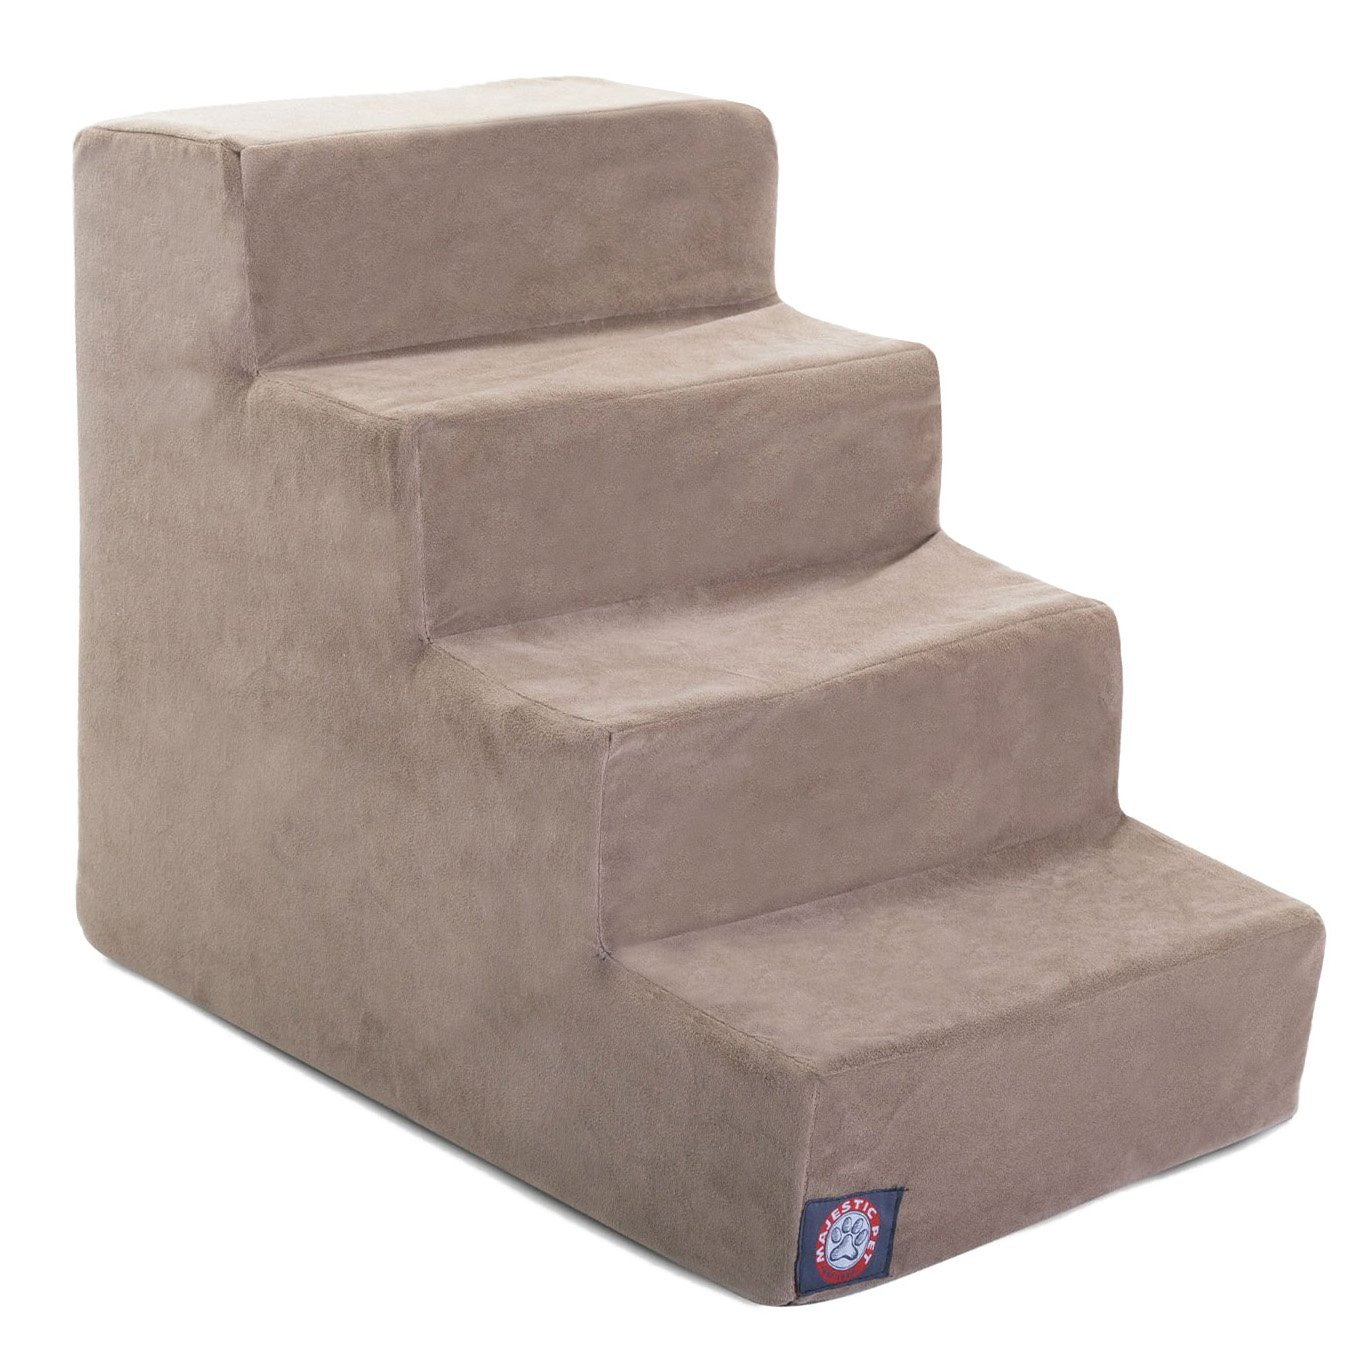 Majestic Pet 4 Step Stone Suede Pet Stairs Products by Majestic Pet